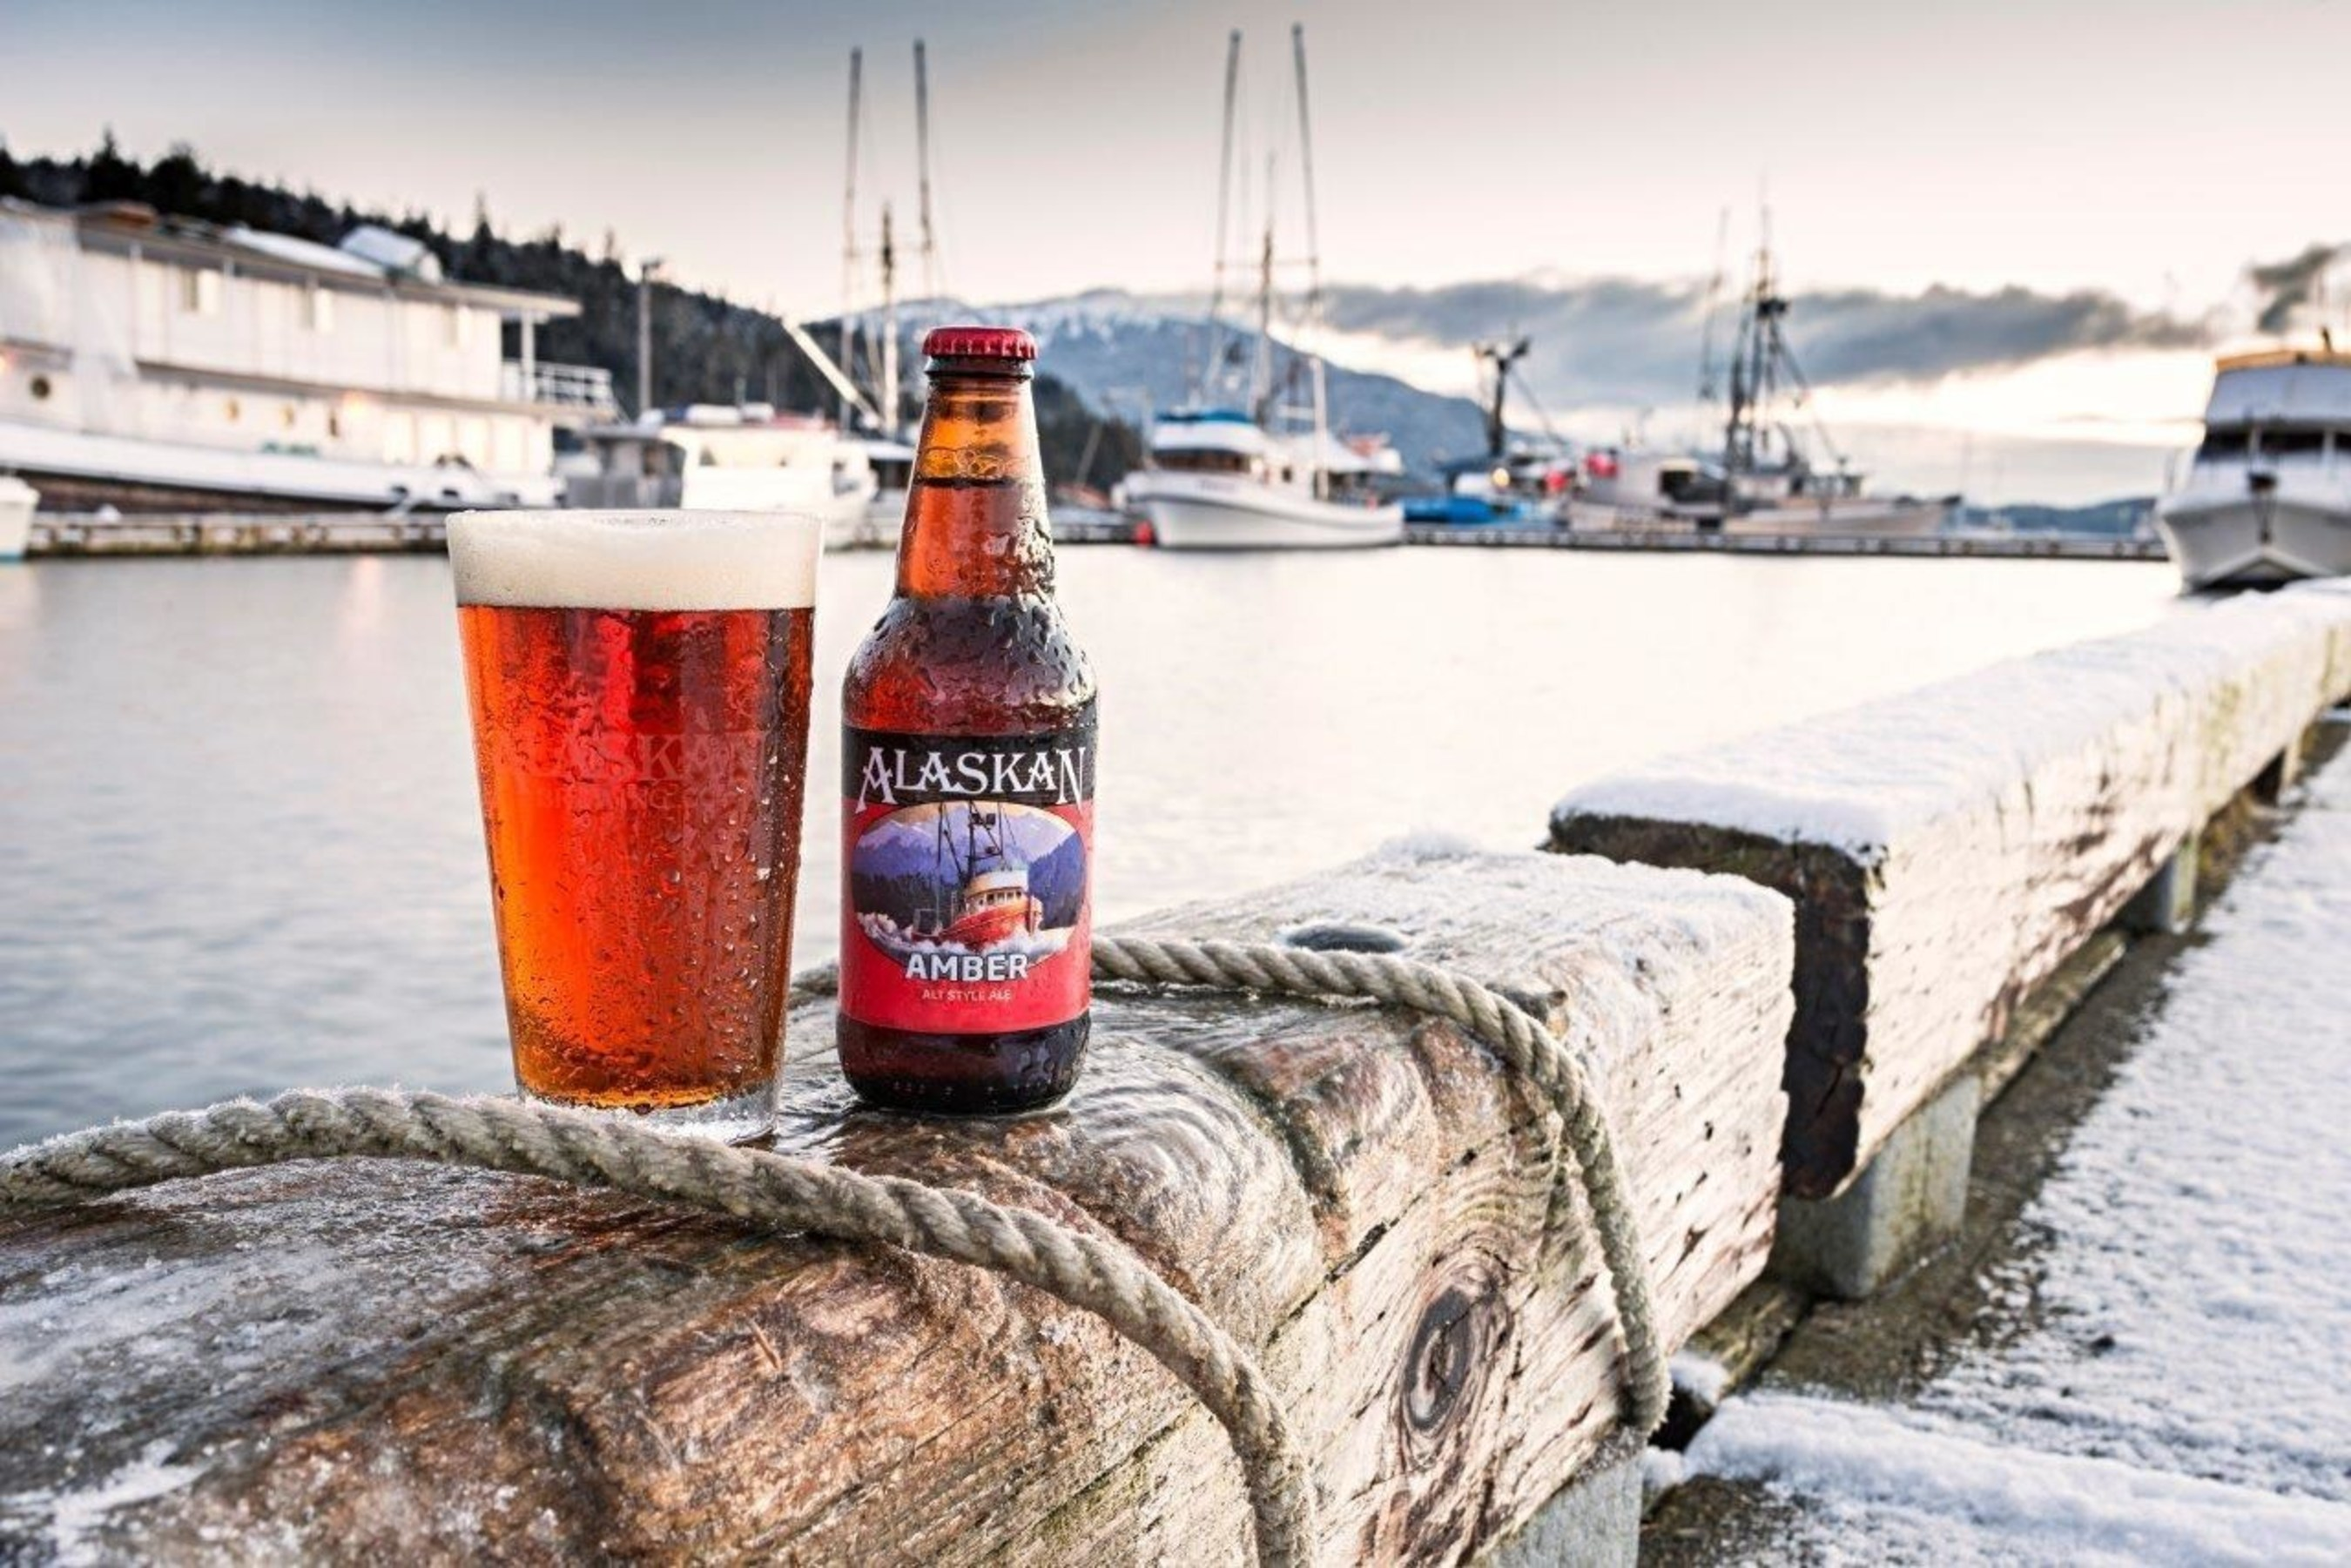 Alaskan Brewing Co., one of the pioneers of the craft beer movement and the nation's 22nd-largest craft brewery*, officially arrives in the Buckeye State this month with a launch of a range of products sure to excite Ohio beer drinkers.